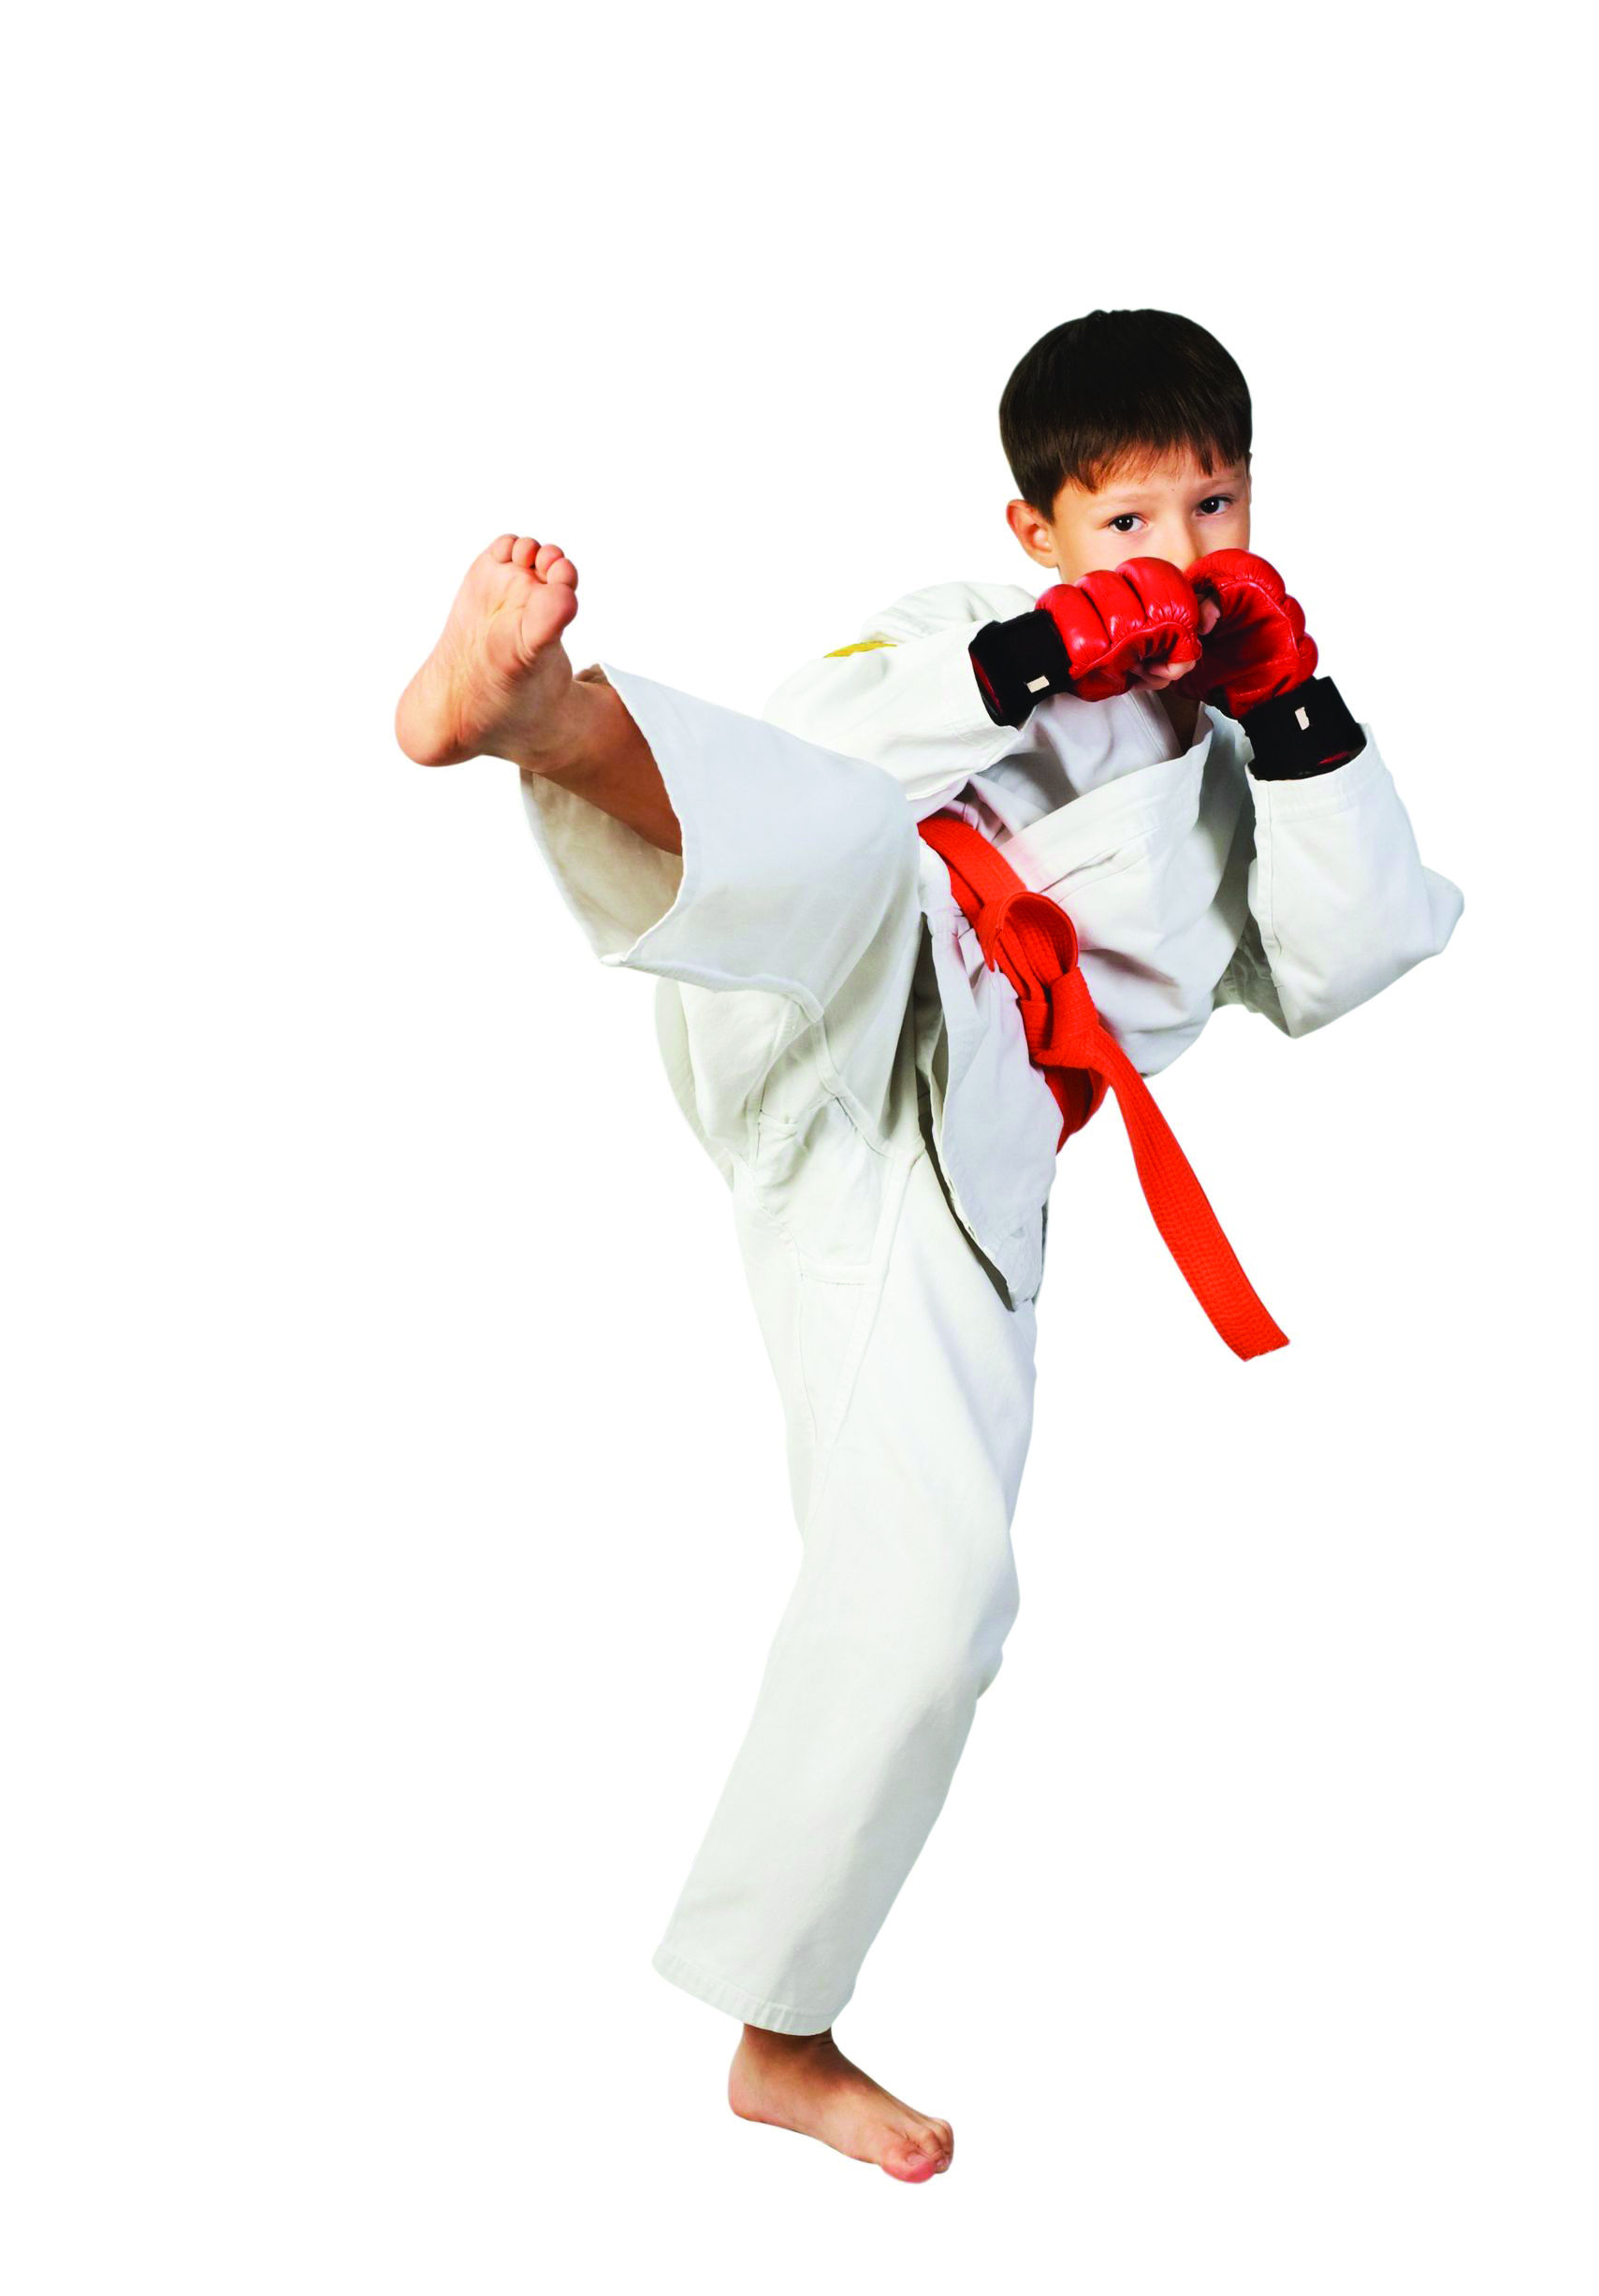 Martial arts have many benefits and great appeal for kids.